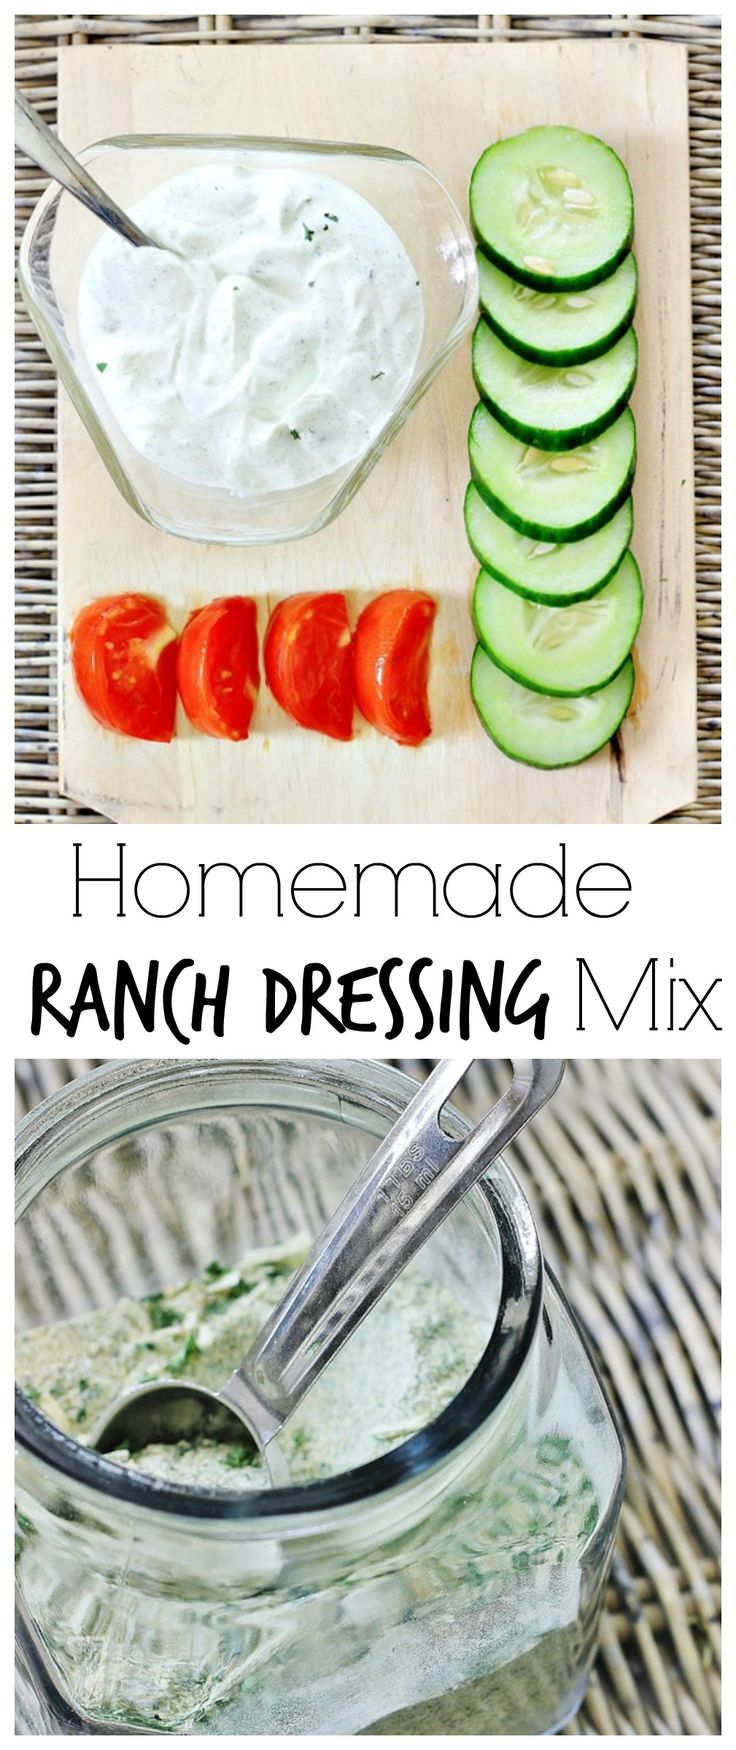 homemade ranch dressing mix recipe